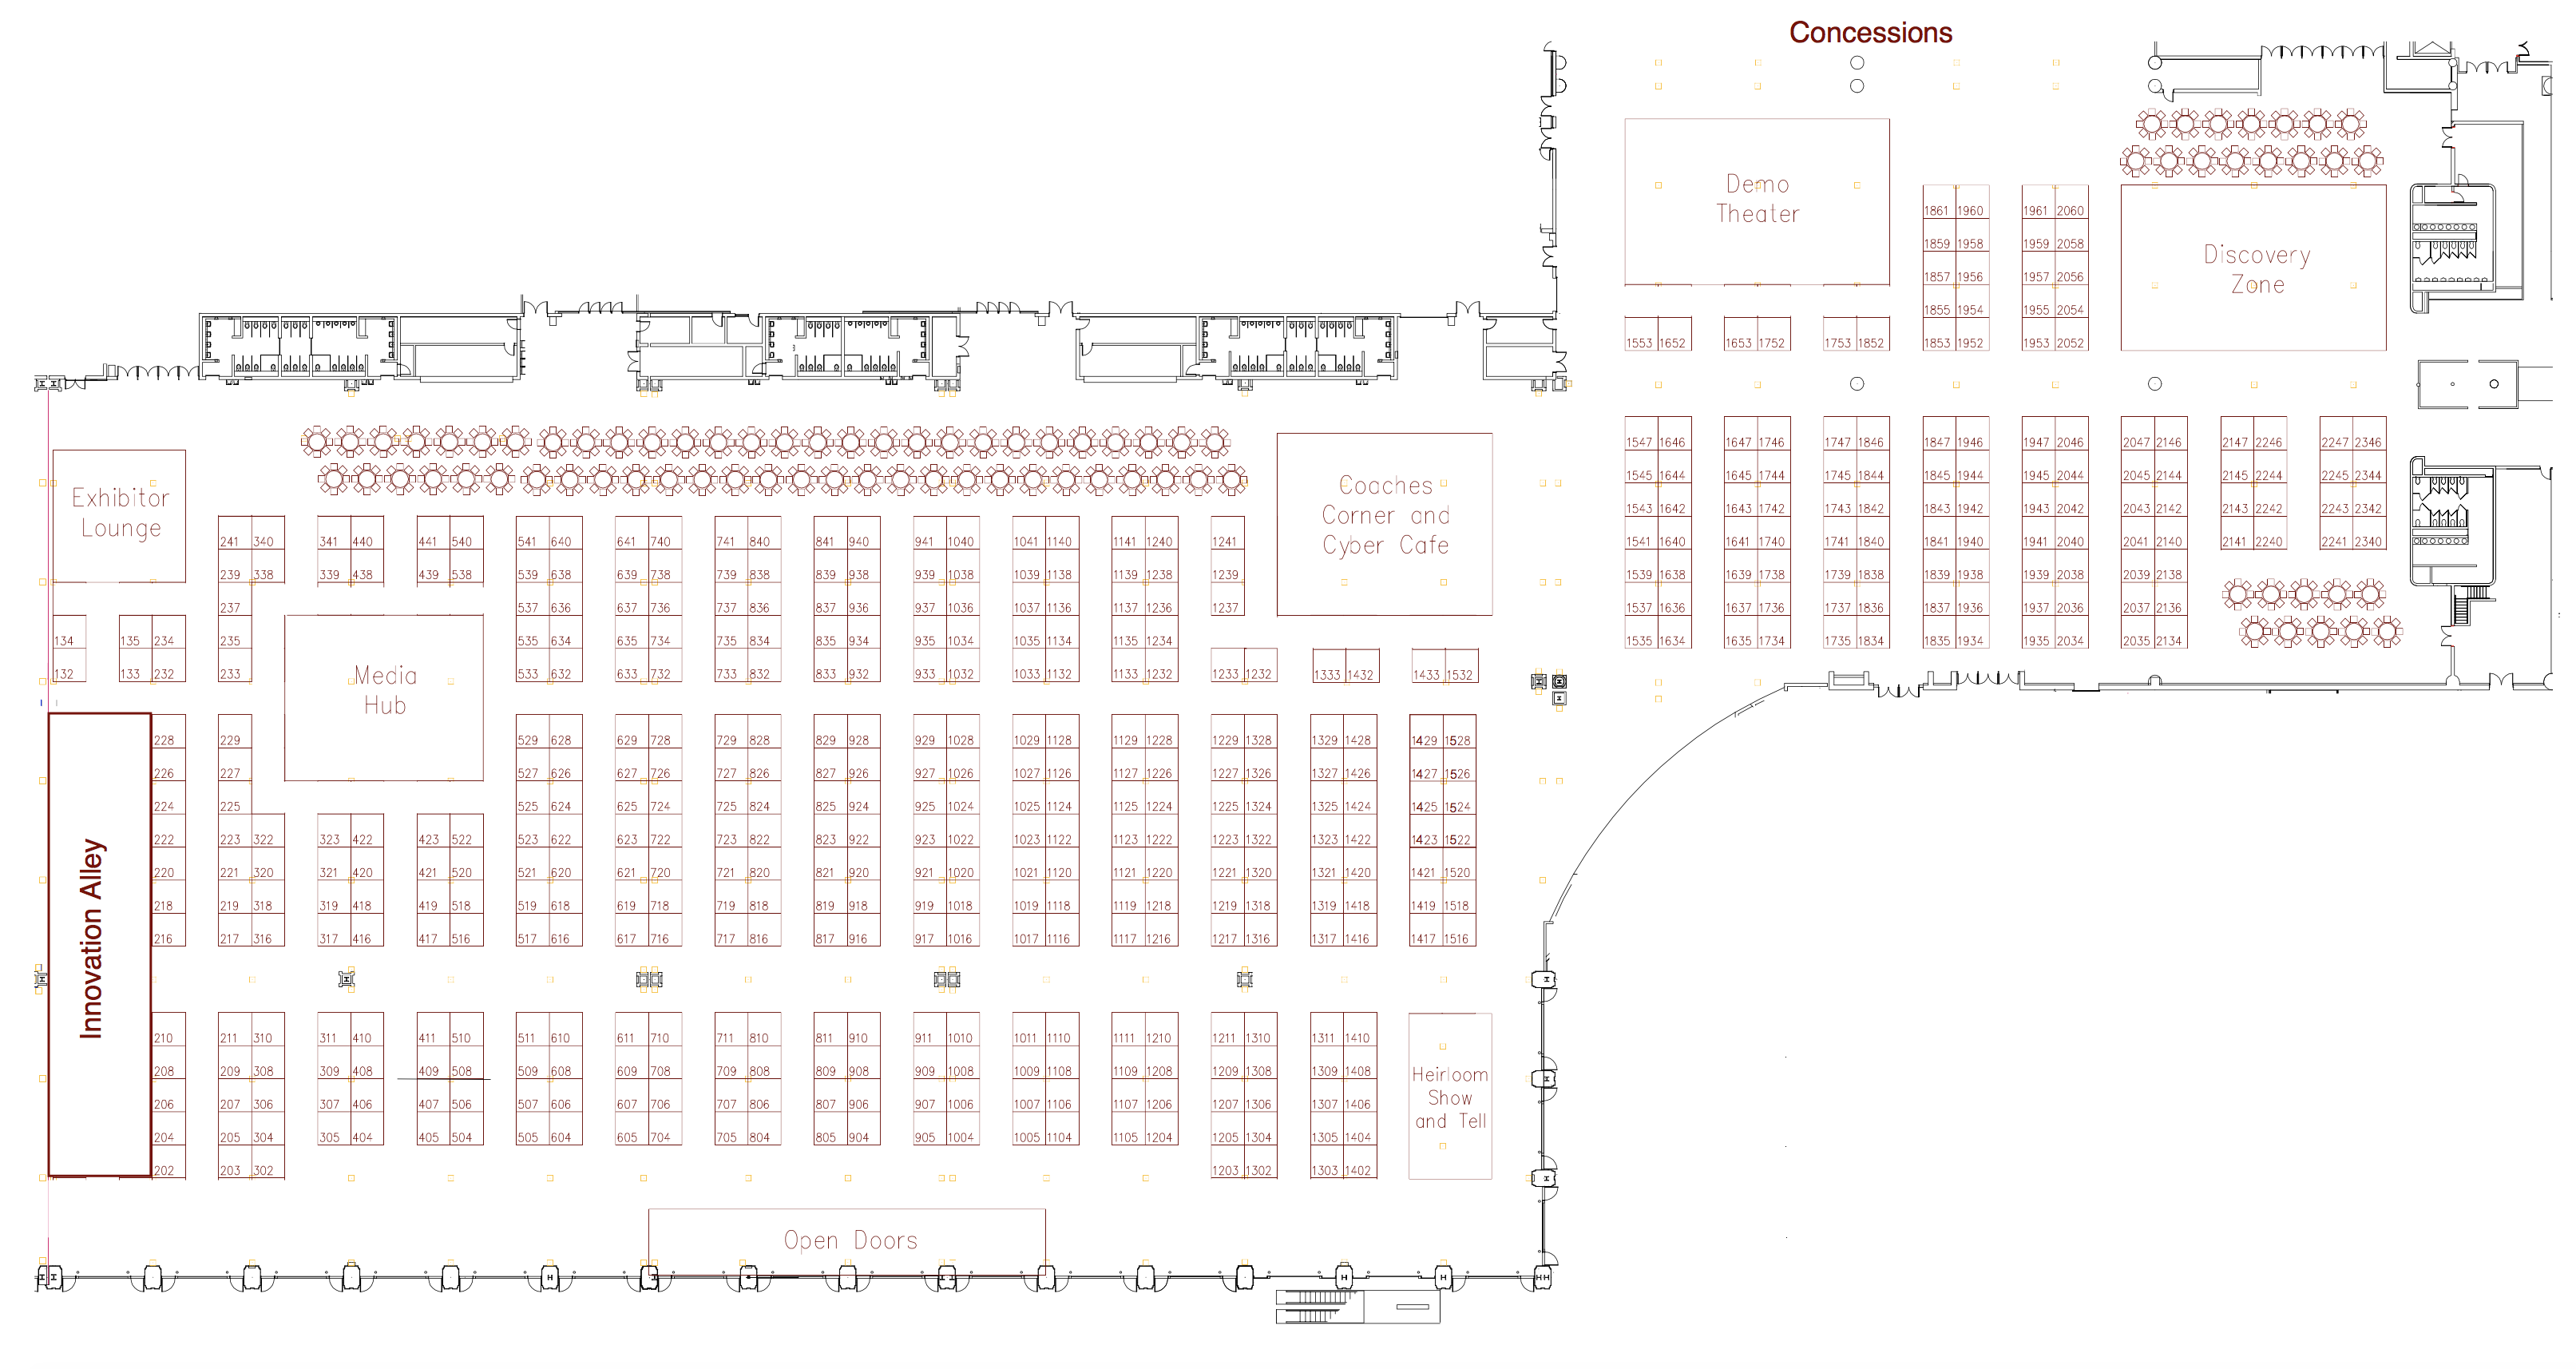 Expo Hall Map